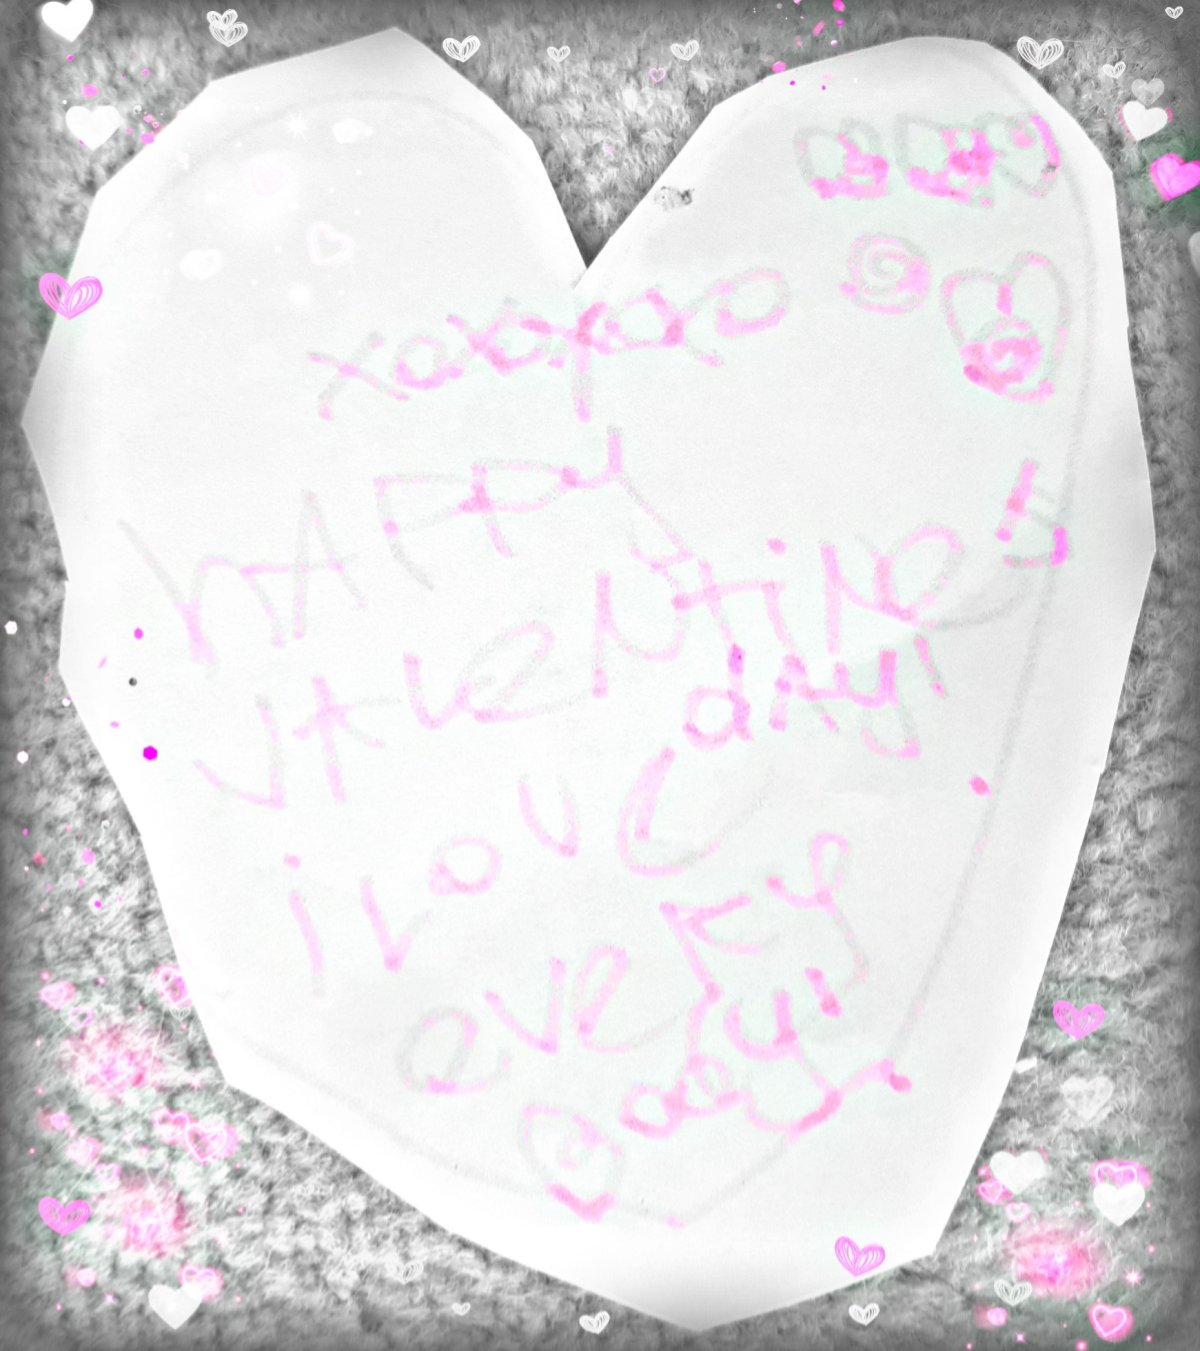 Random Acts of Kindness Day & Valentines Day: Spread Some Love!